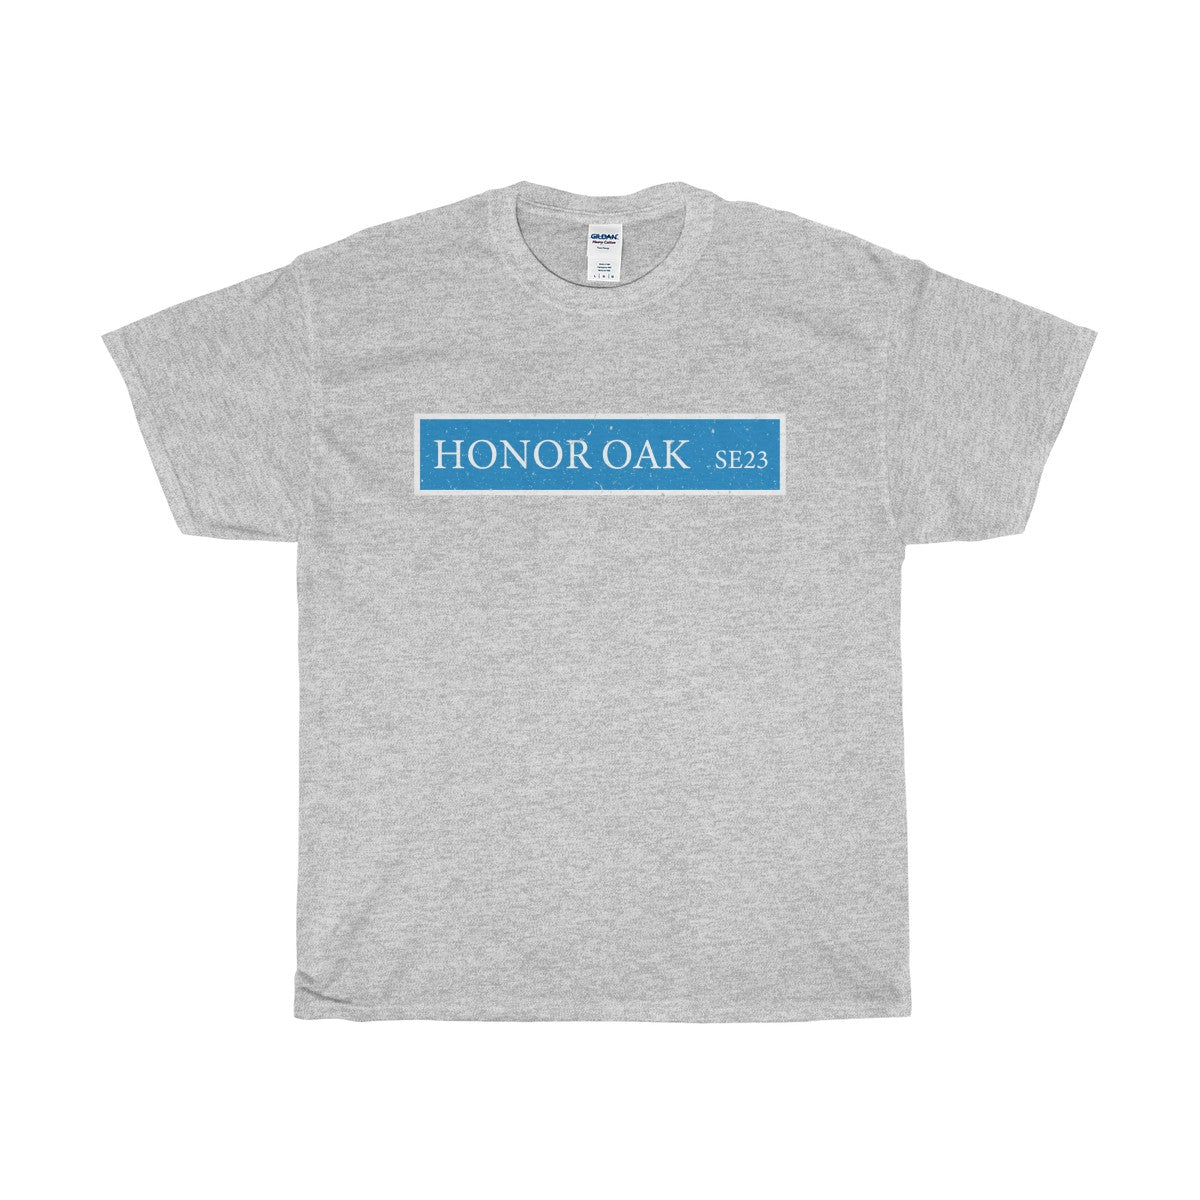 Honor Oak Road Sign T-Shirt